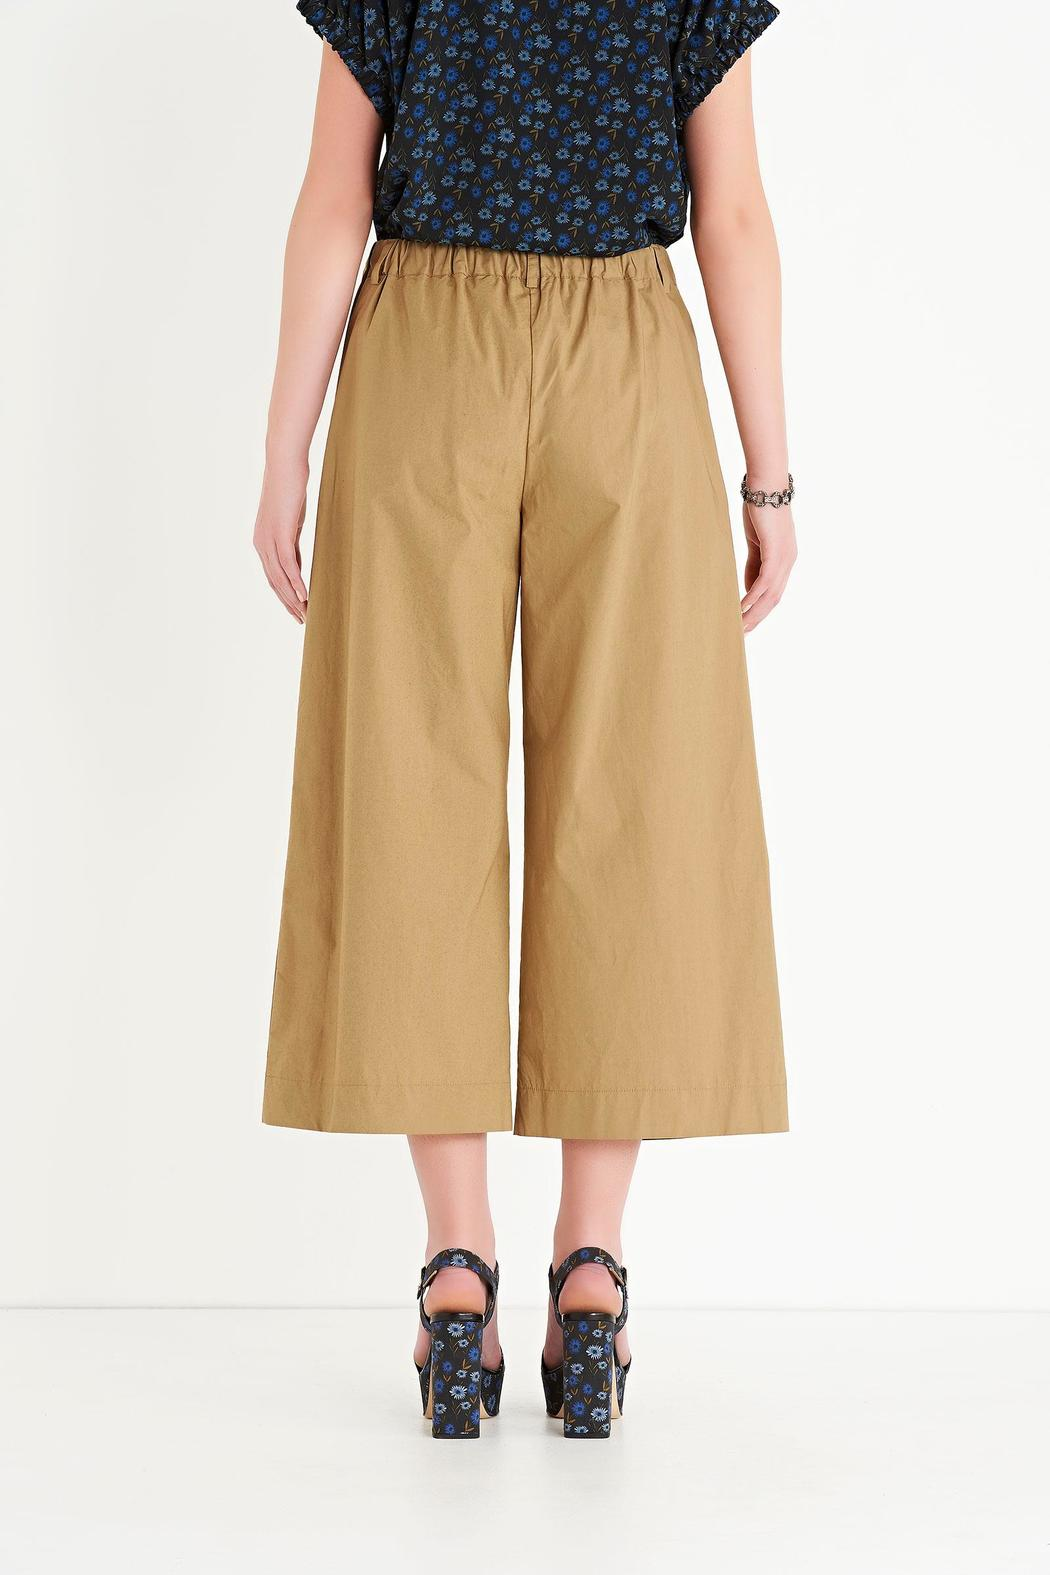 Ottod'ame Cropped Poplin Pant - Front Full Image